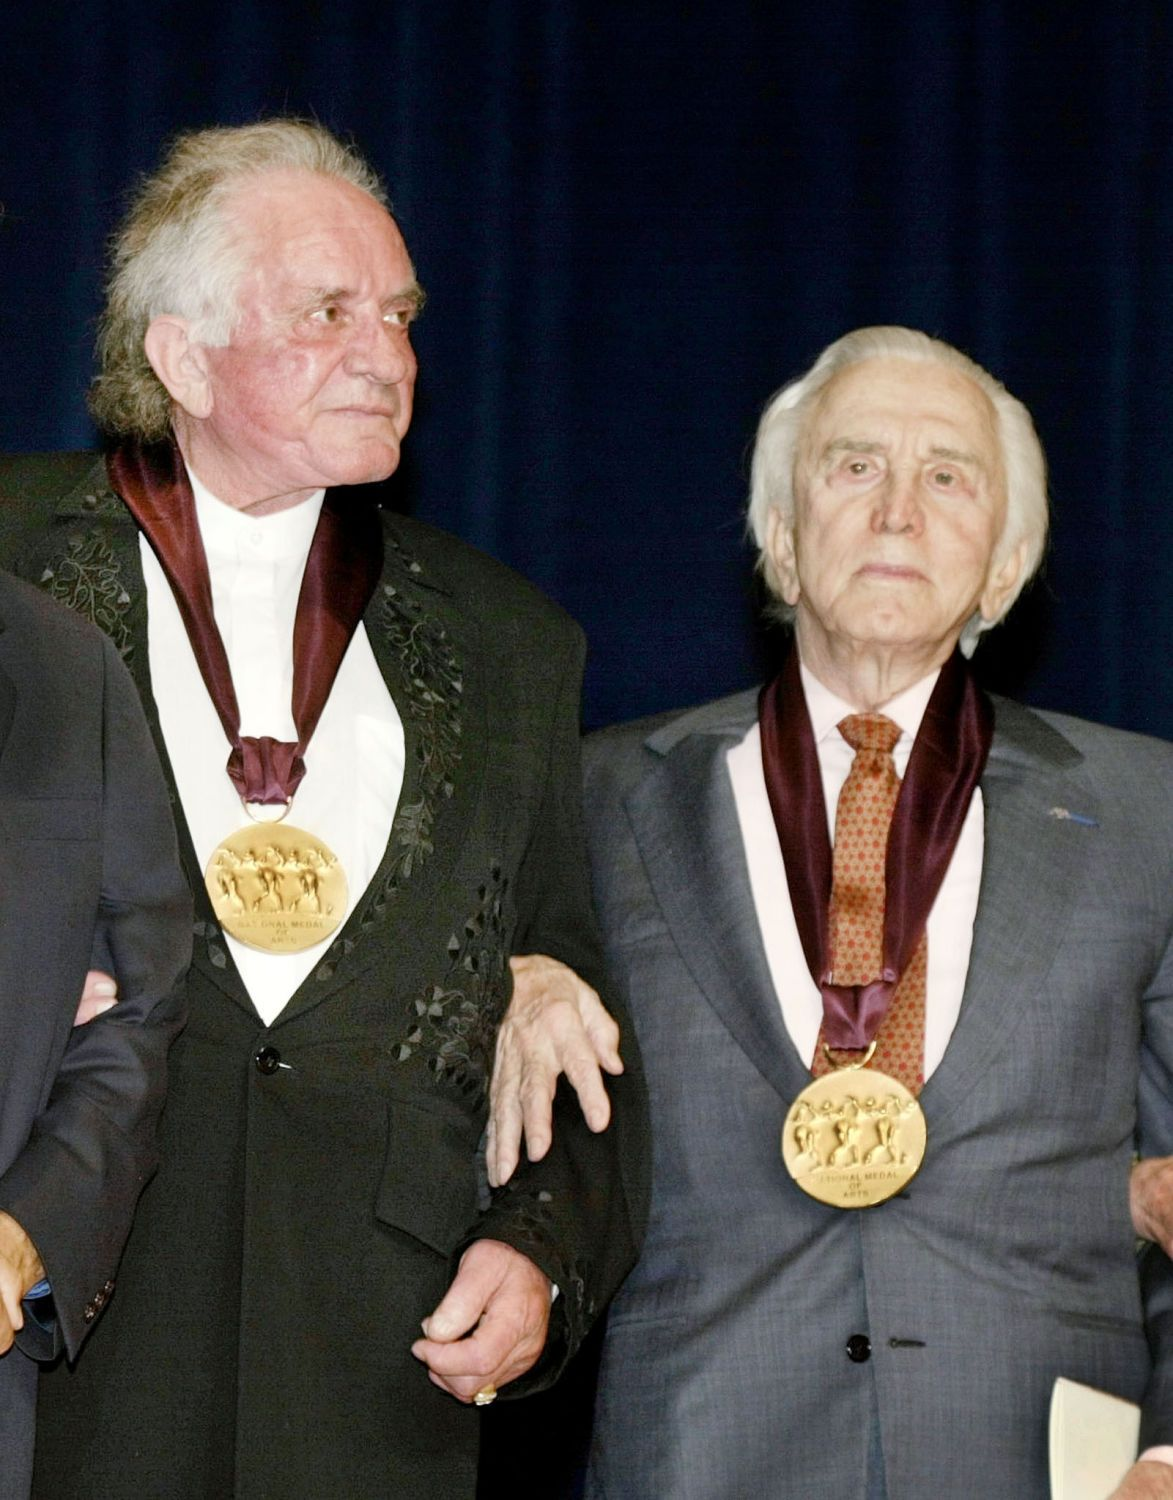 Johnny Cash Photo Gallery: Both Johnny Cash and former costar Kirk Douglas recieved the National Medal of the Arts on April 22, 2002 from President George W. Bush. (Photo:  Reuters/CORBIS)